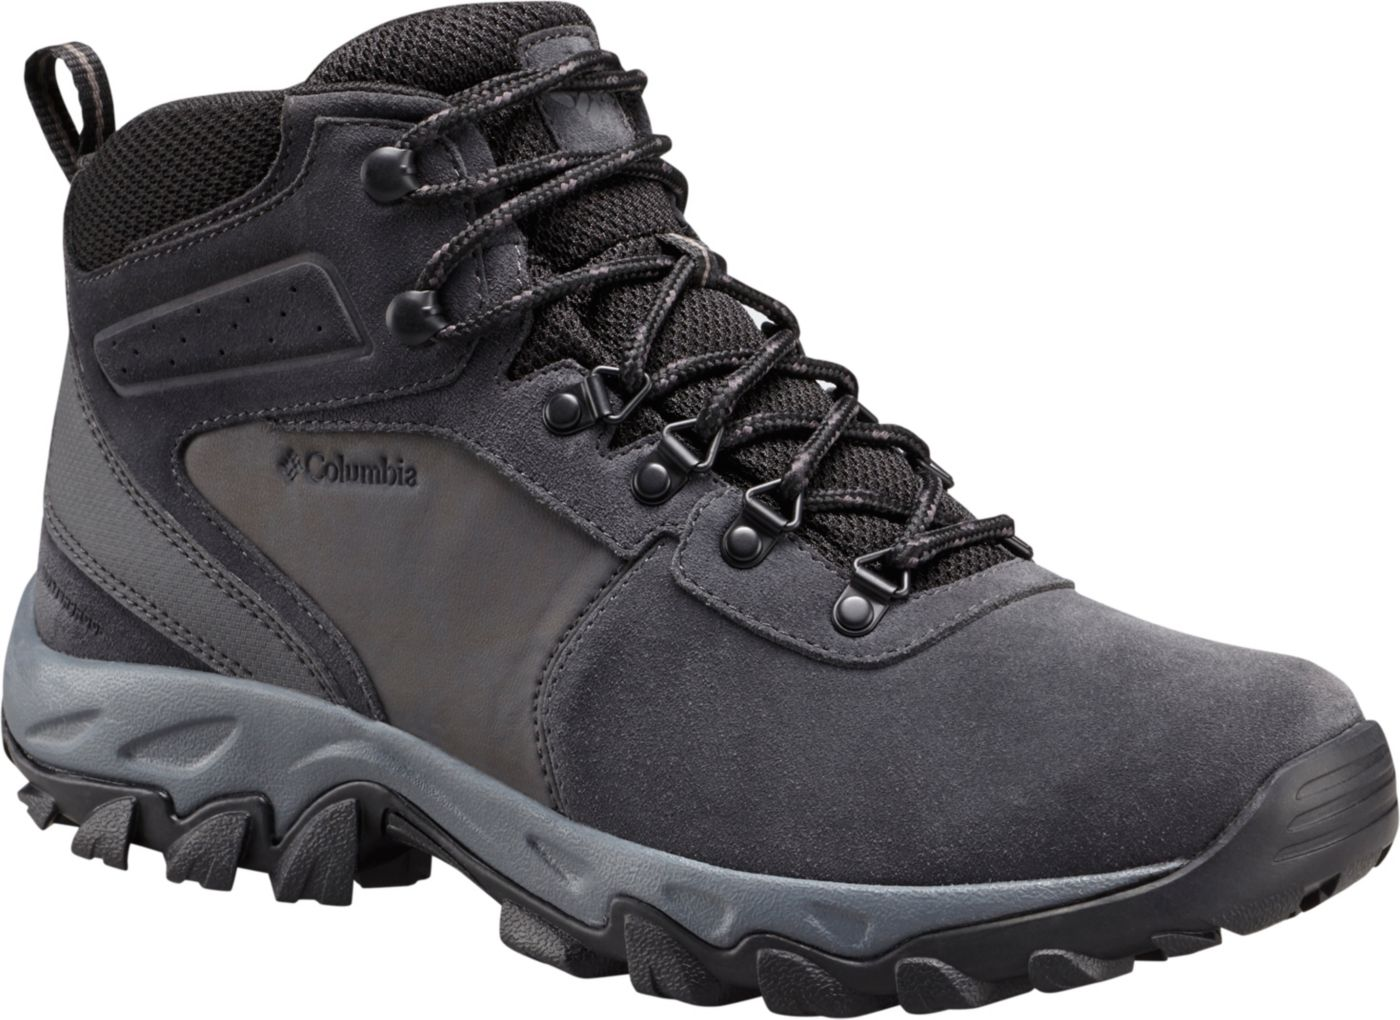 Columbia Men's Newton Ridge Plus Suede Waterproof Hiking Boots